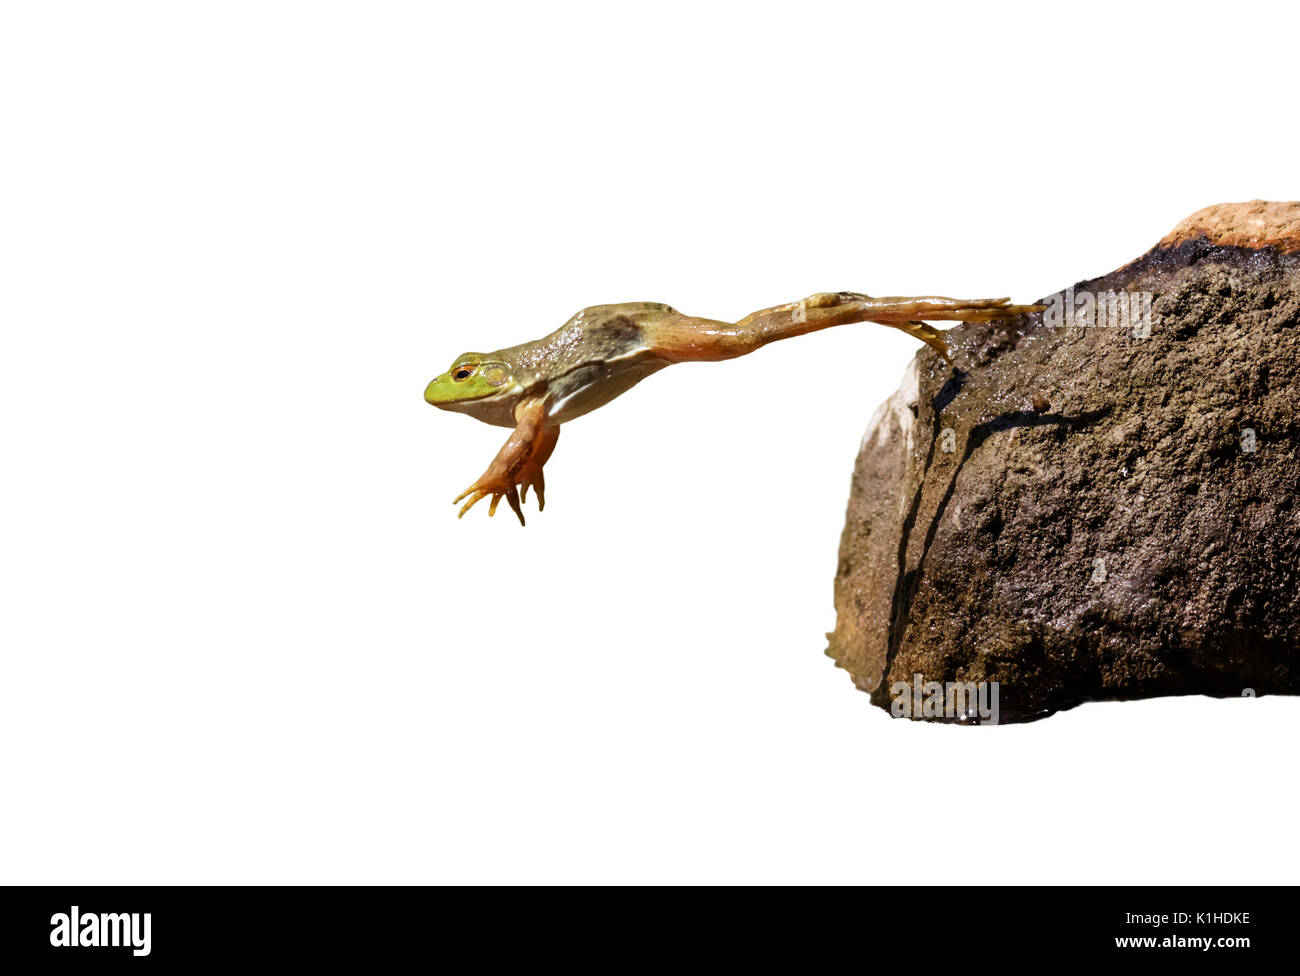 Adult American bullfrog (Lithobates catesbeianus) jumping, isolated on white background. - Stock Image